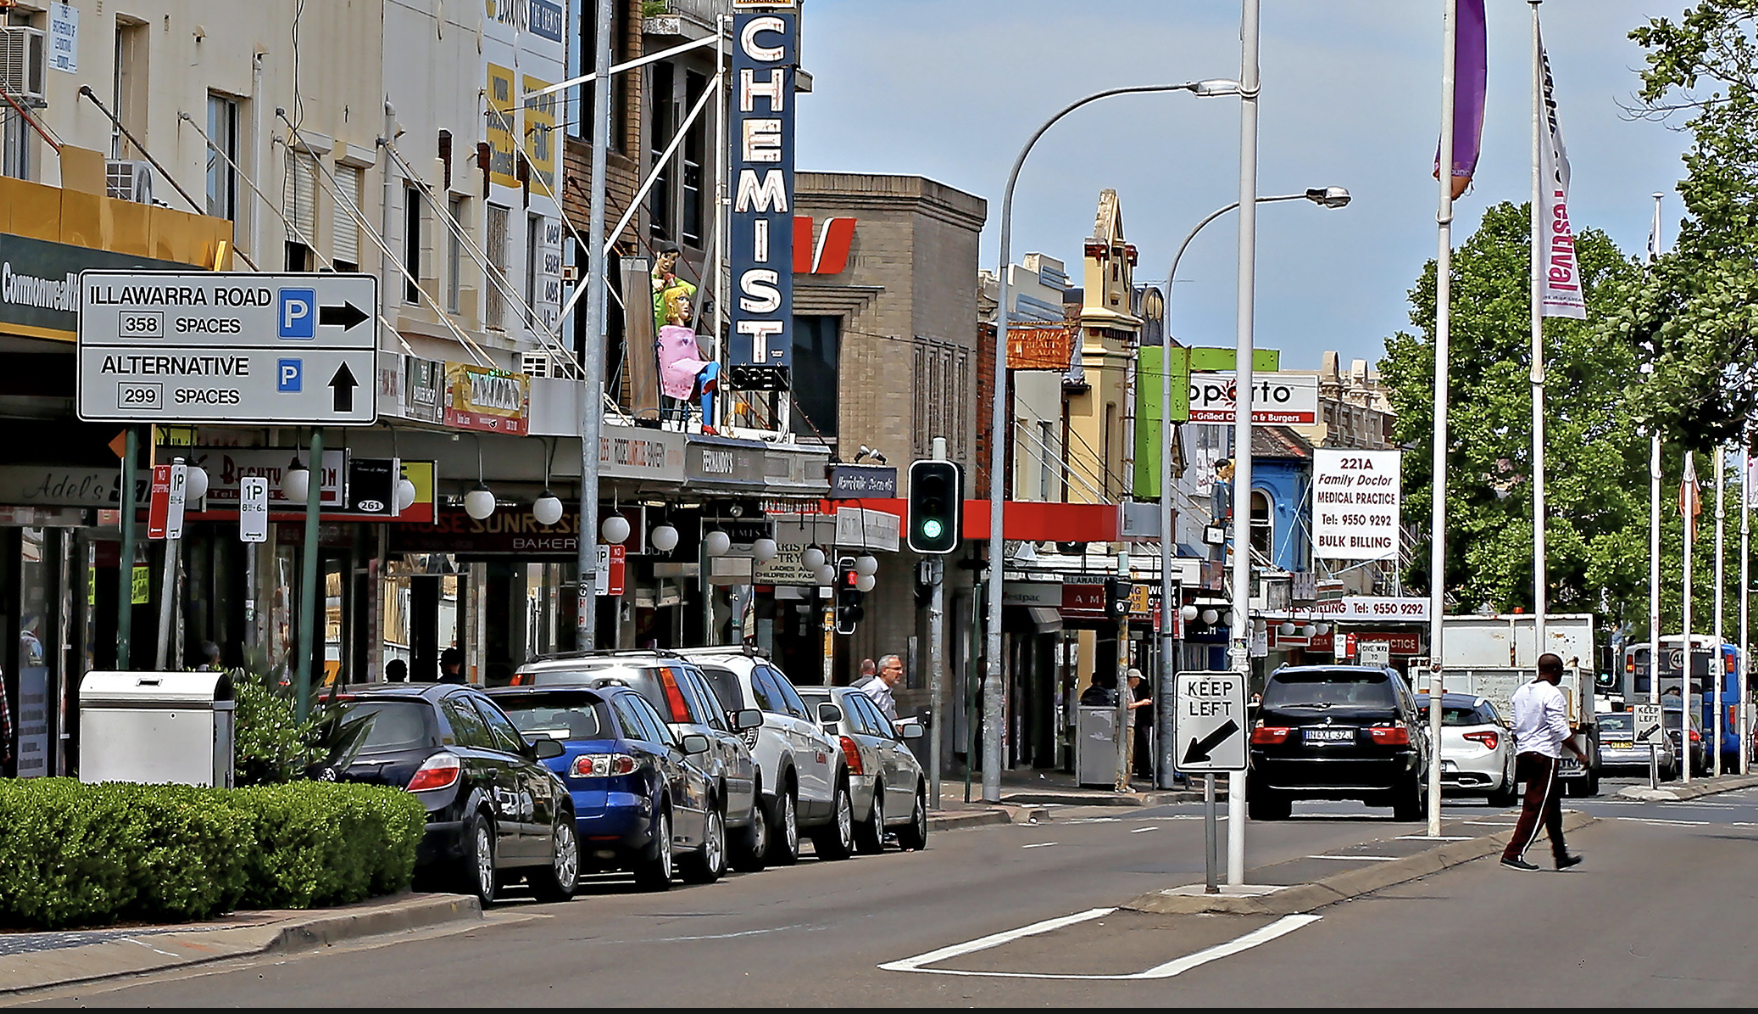 AMP says Marrickville's estimated growth of 1.5 per cent per annum will see its population grow to 440,000 by 2021.